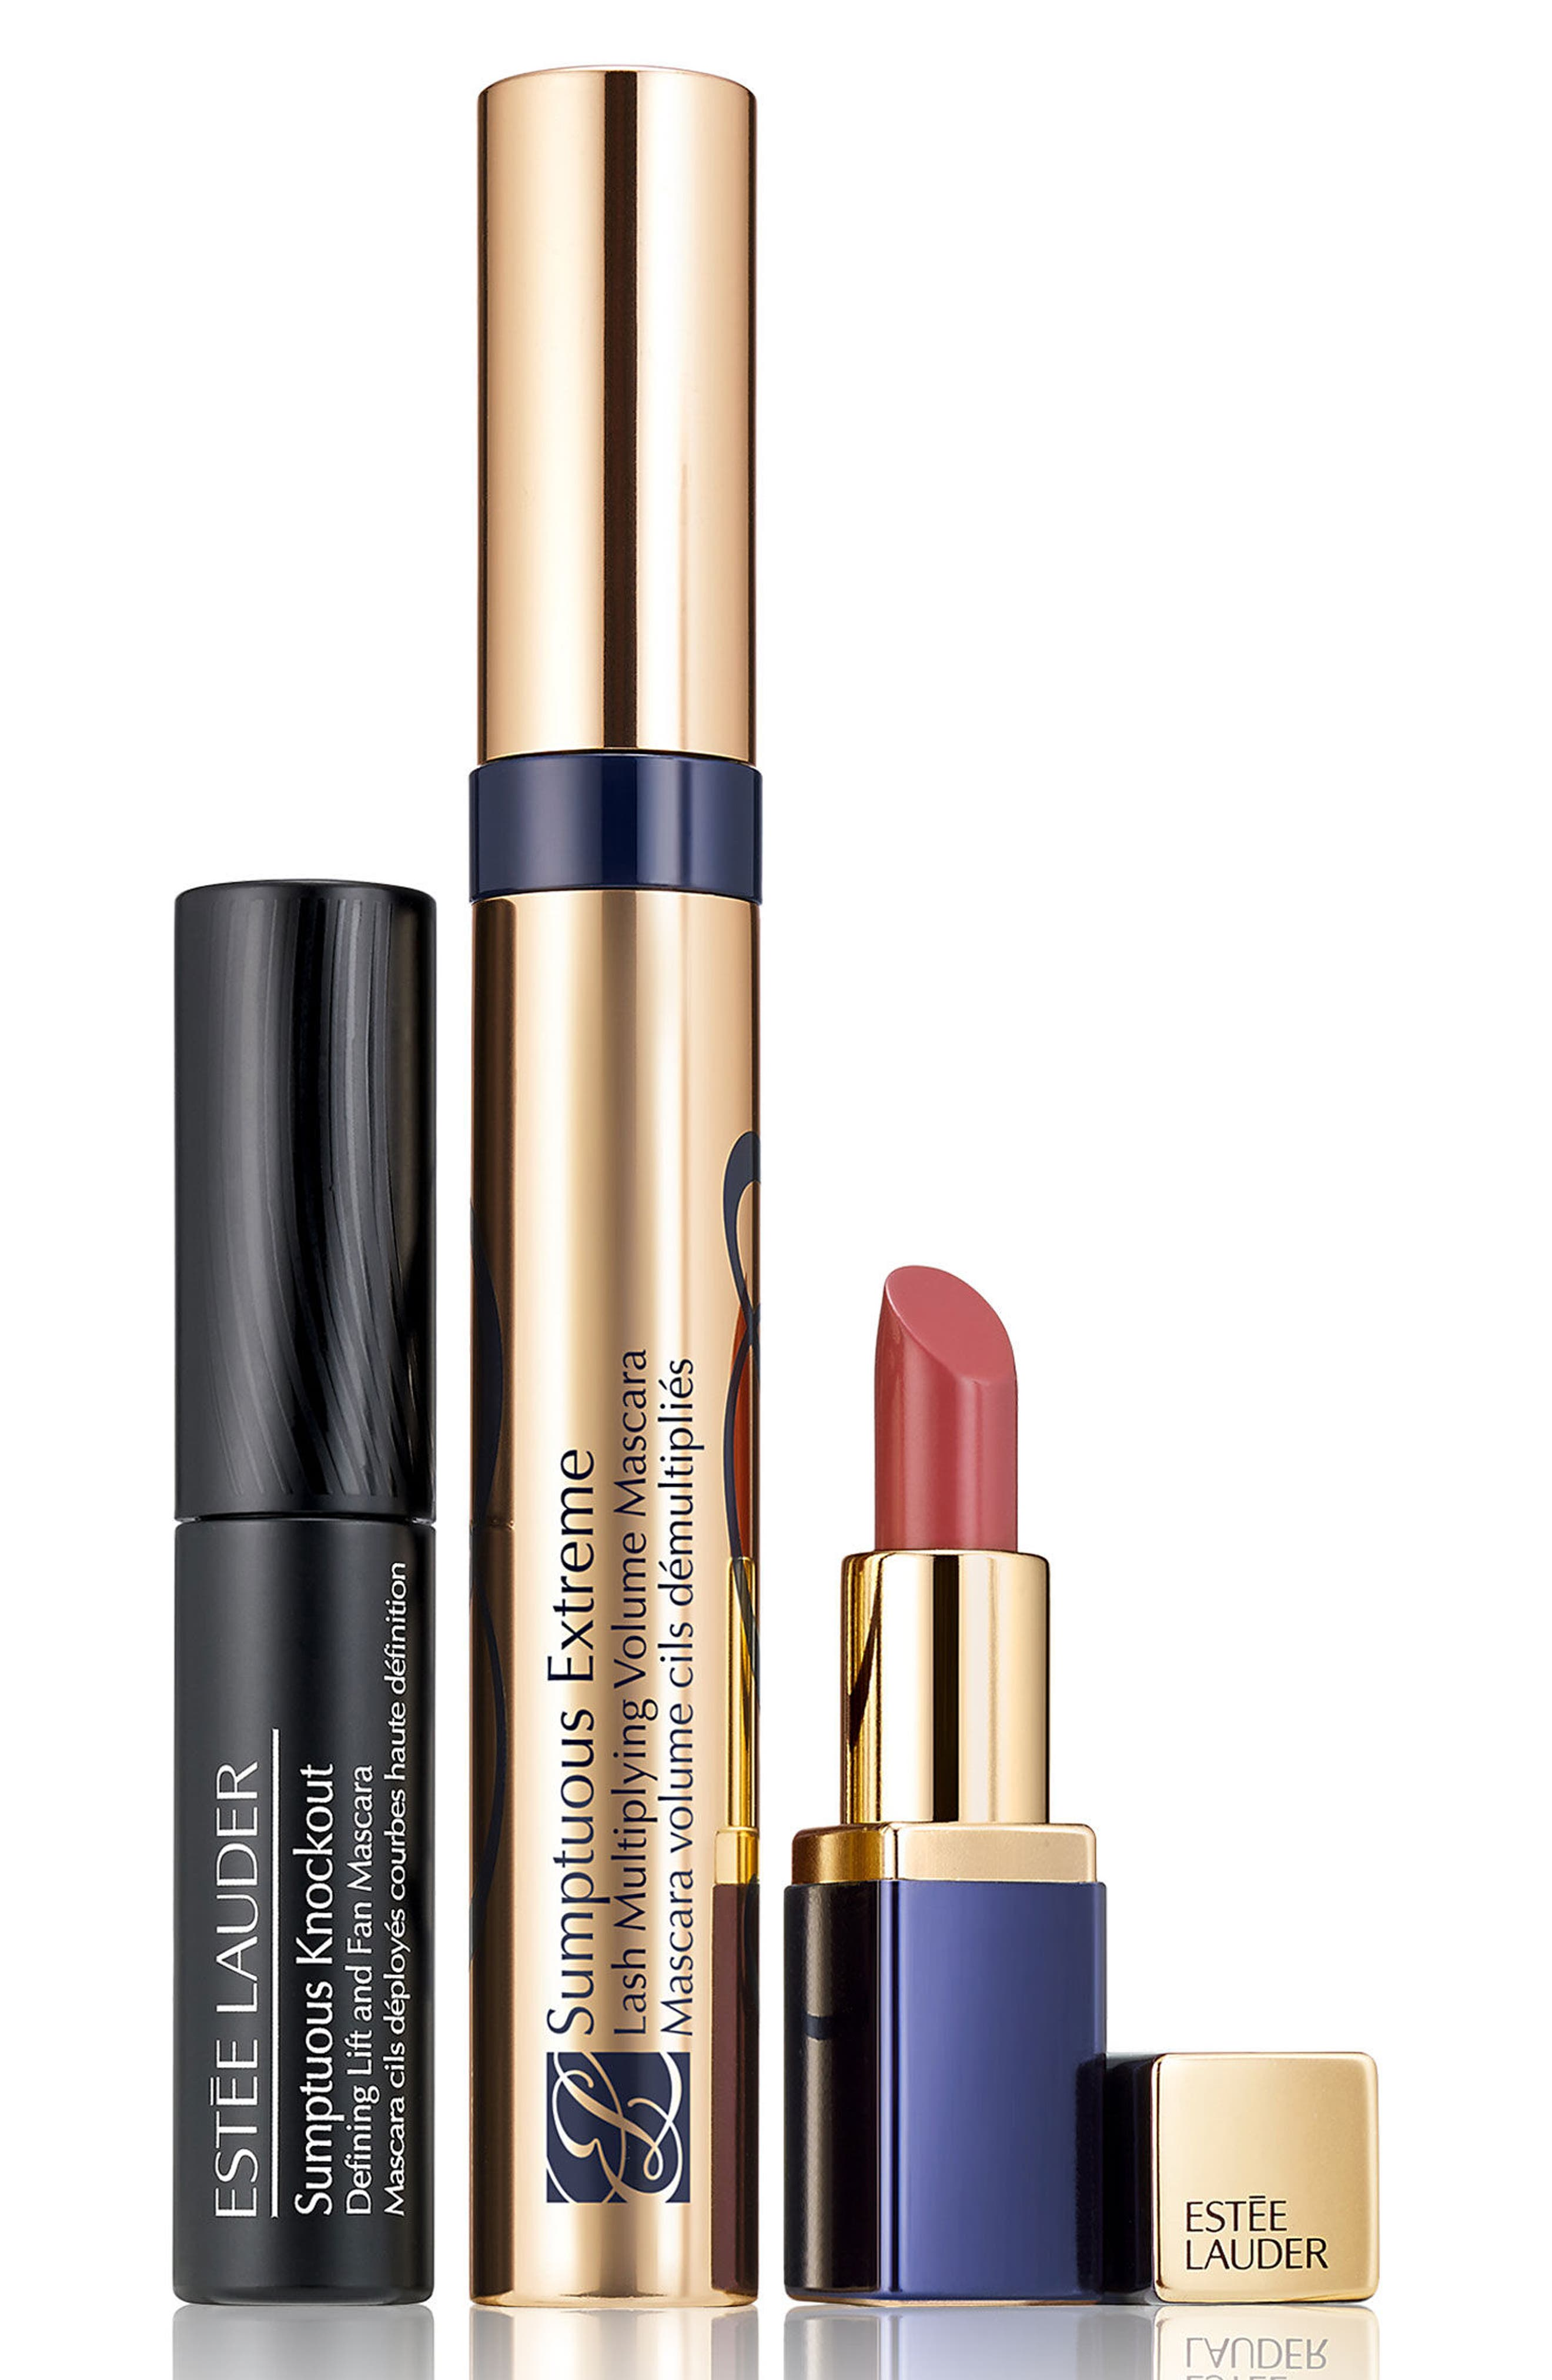 Estée Lauder Extreme Volume Lash Trio ($50 Value)